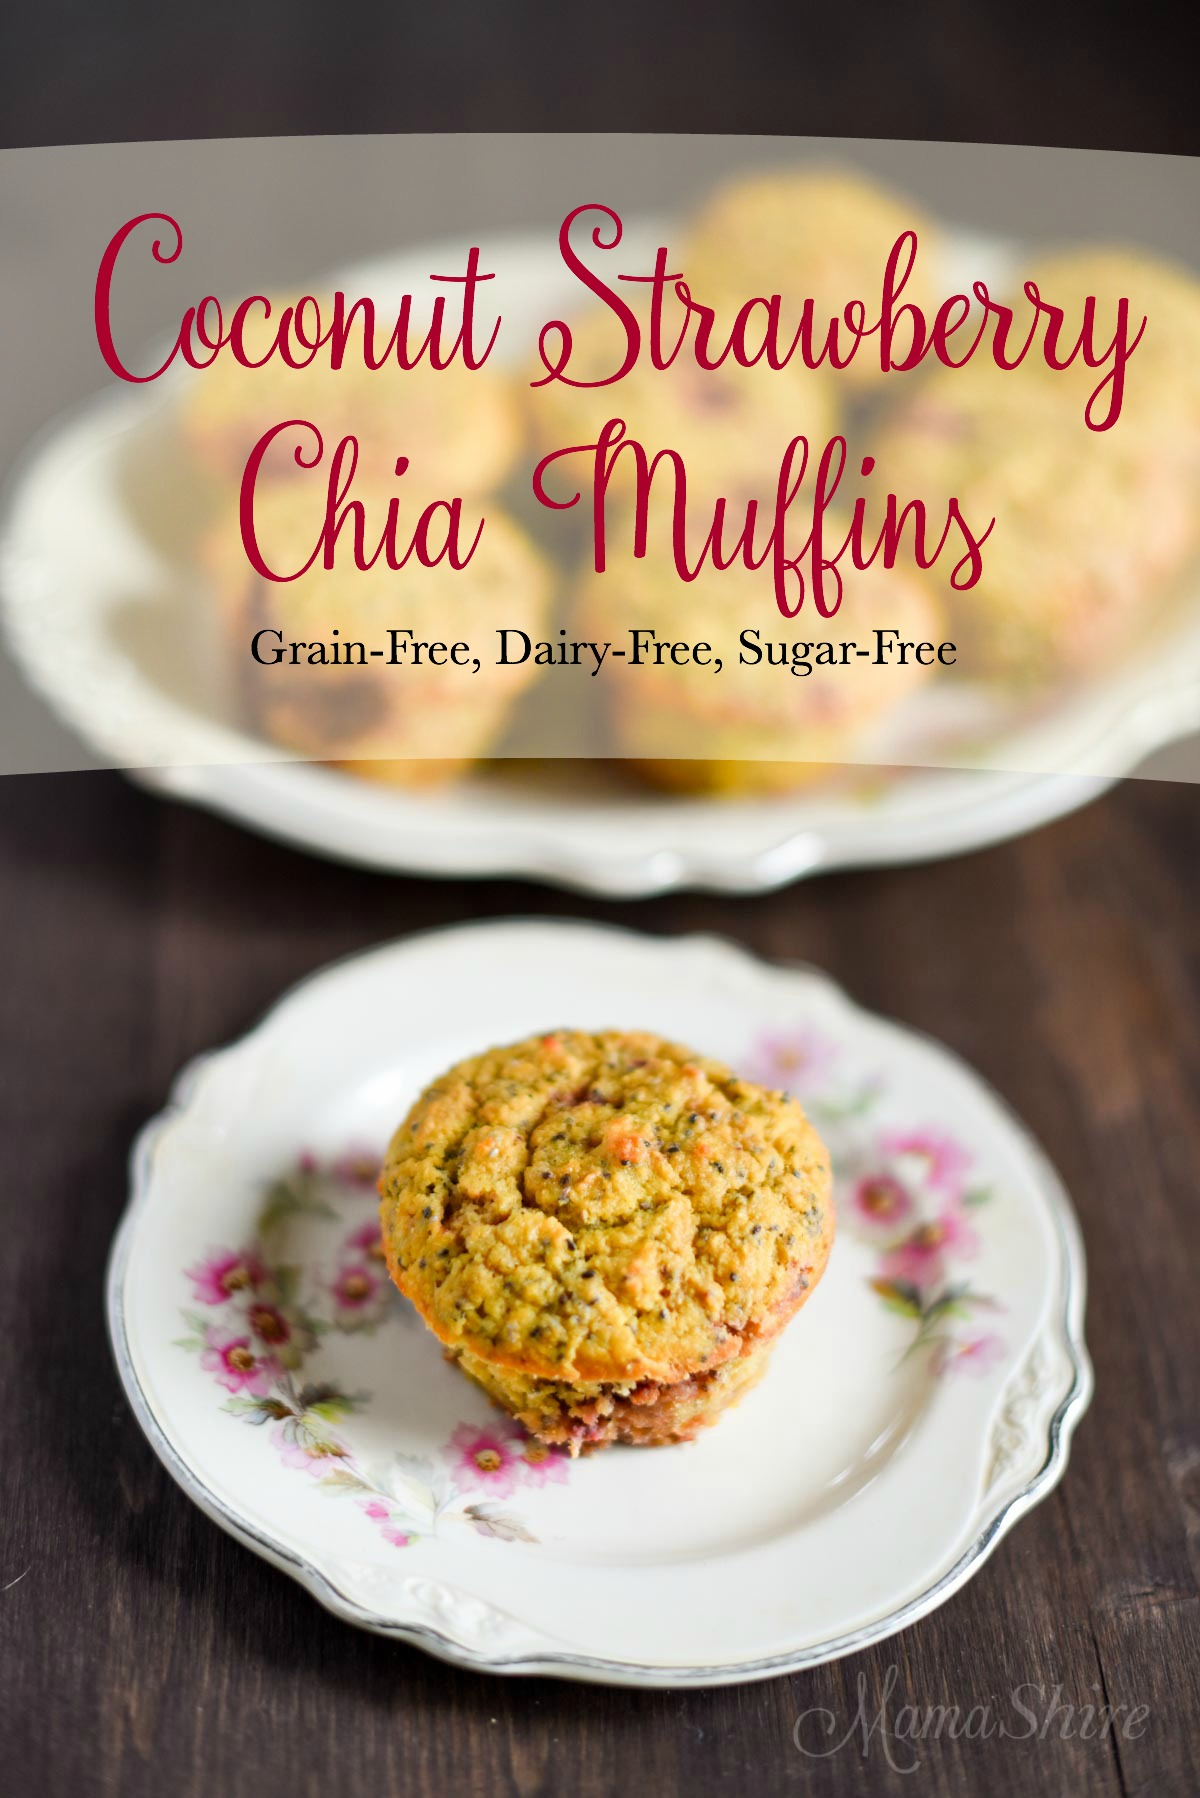 Coconut Strawberry Chia Muffins - Grain-Free, Dairy-Free, Sugar-Free